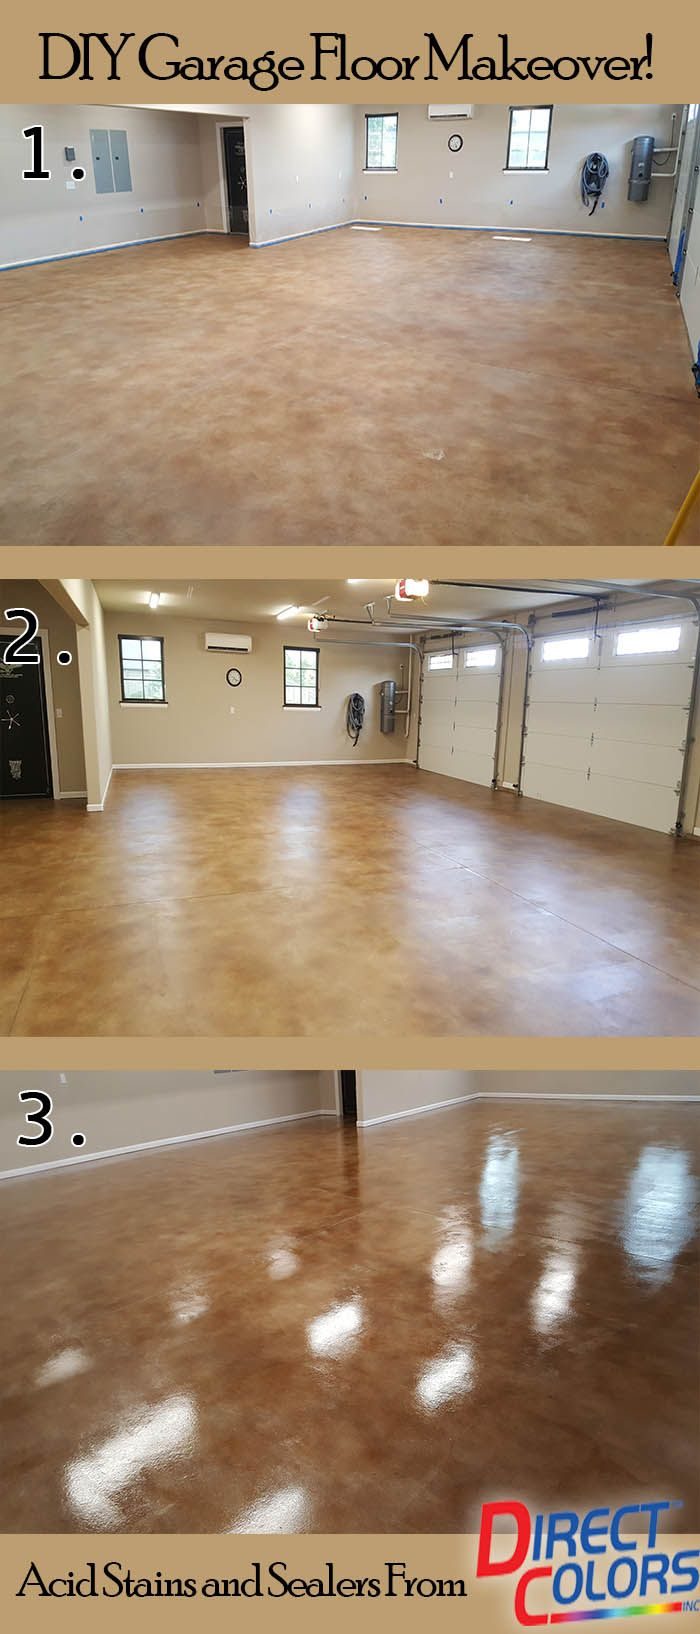 Garage Floor Stain Ideas And Photos Direct Colors Garage Floor Garage Decor Garage Design